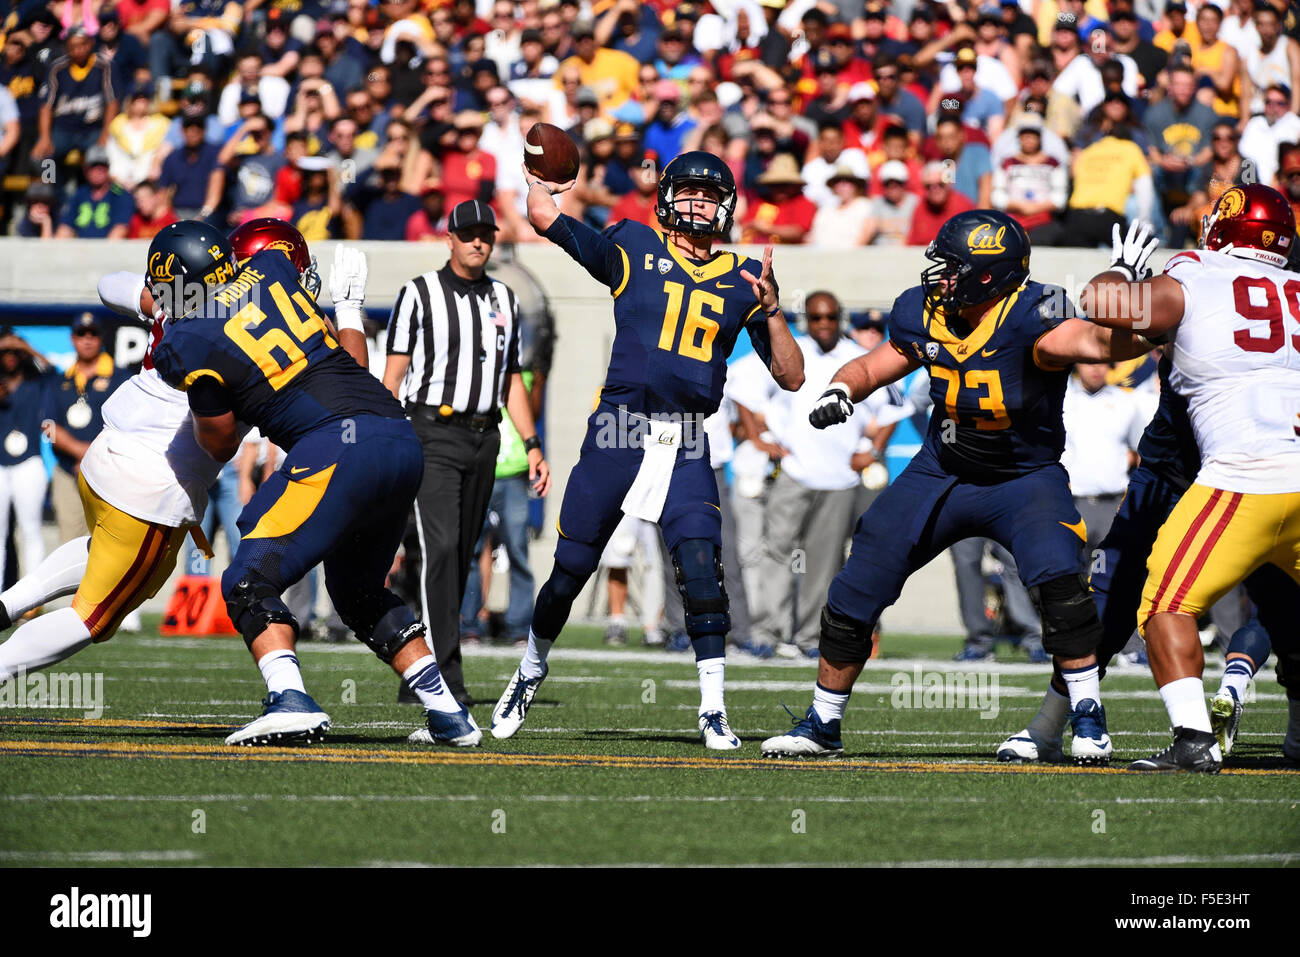 Berkley, CA. 31st Oct, 2015. Jared Goff of the Cal Bears in action during a 27-21 loss to the USC Trojans at Kabam - Stock Image